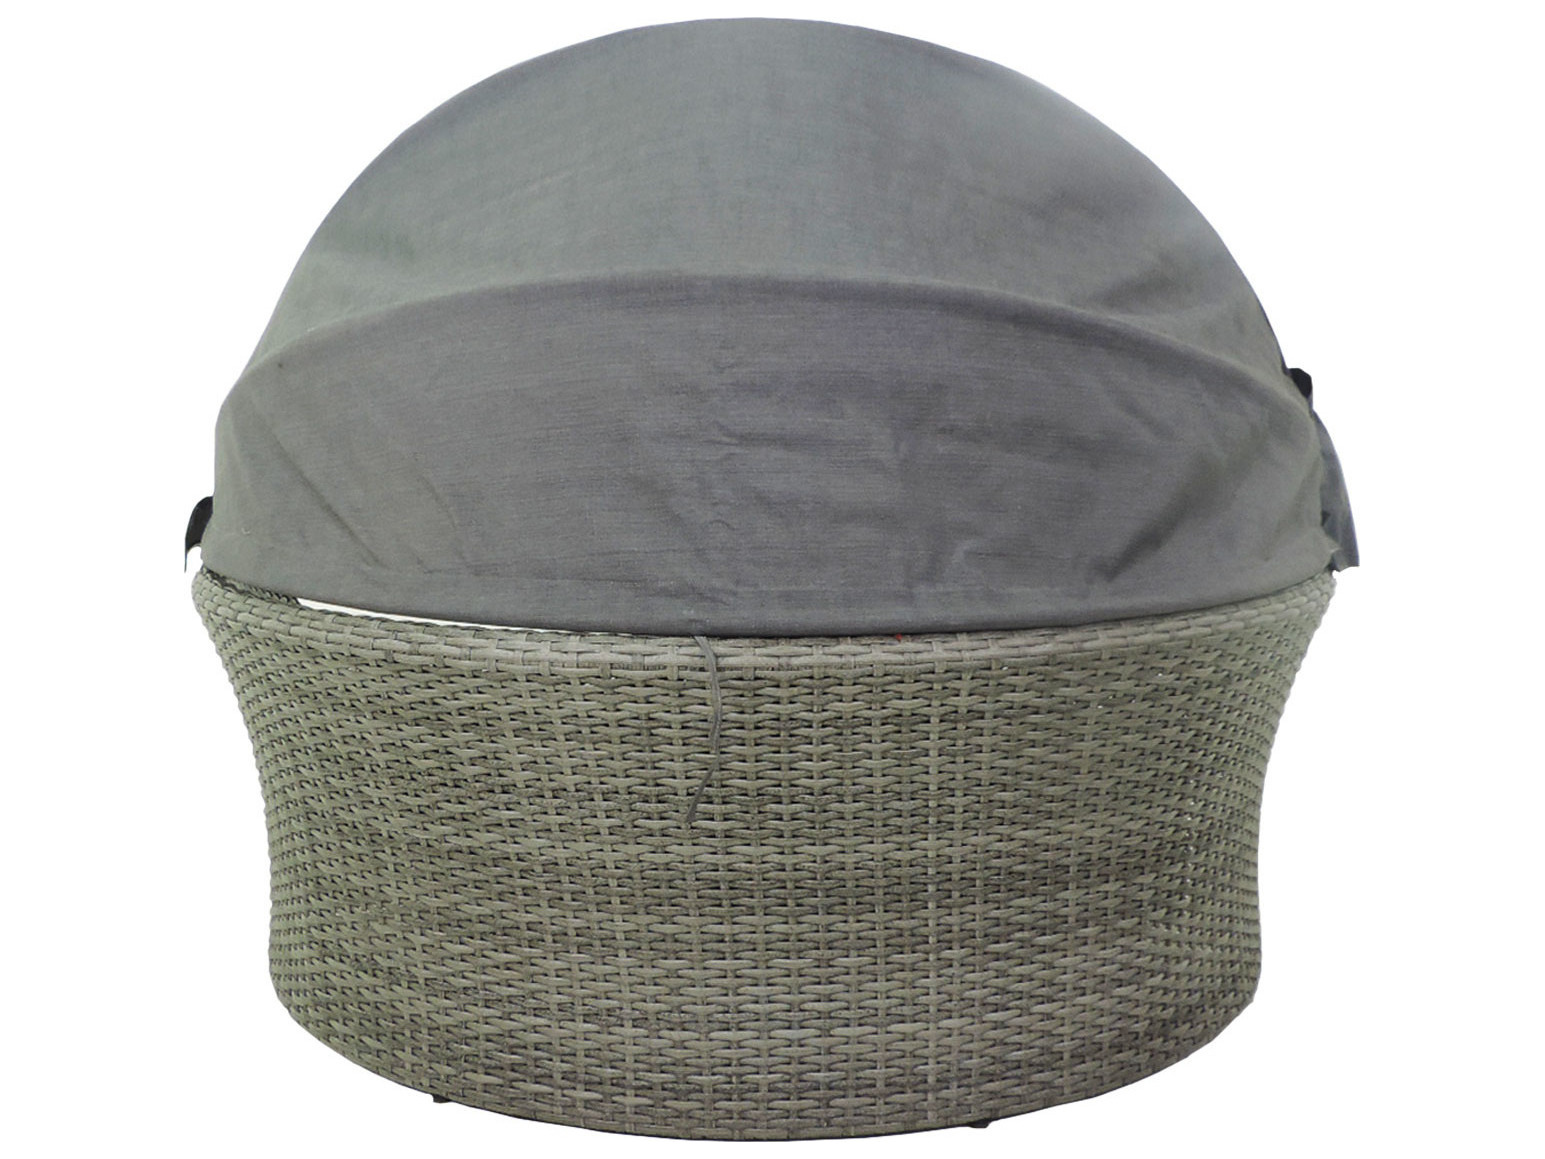 Patio heaven ethereal austin wicker modular canopy daybed for Patio heaven